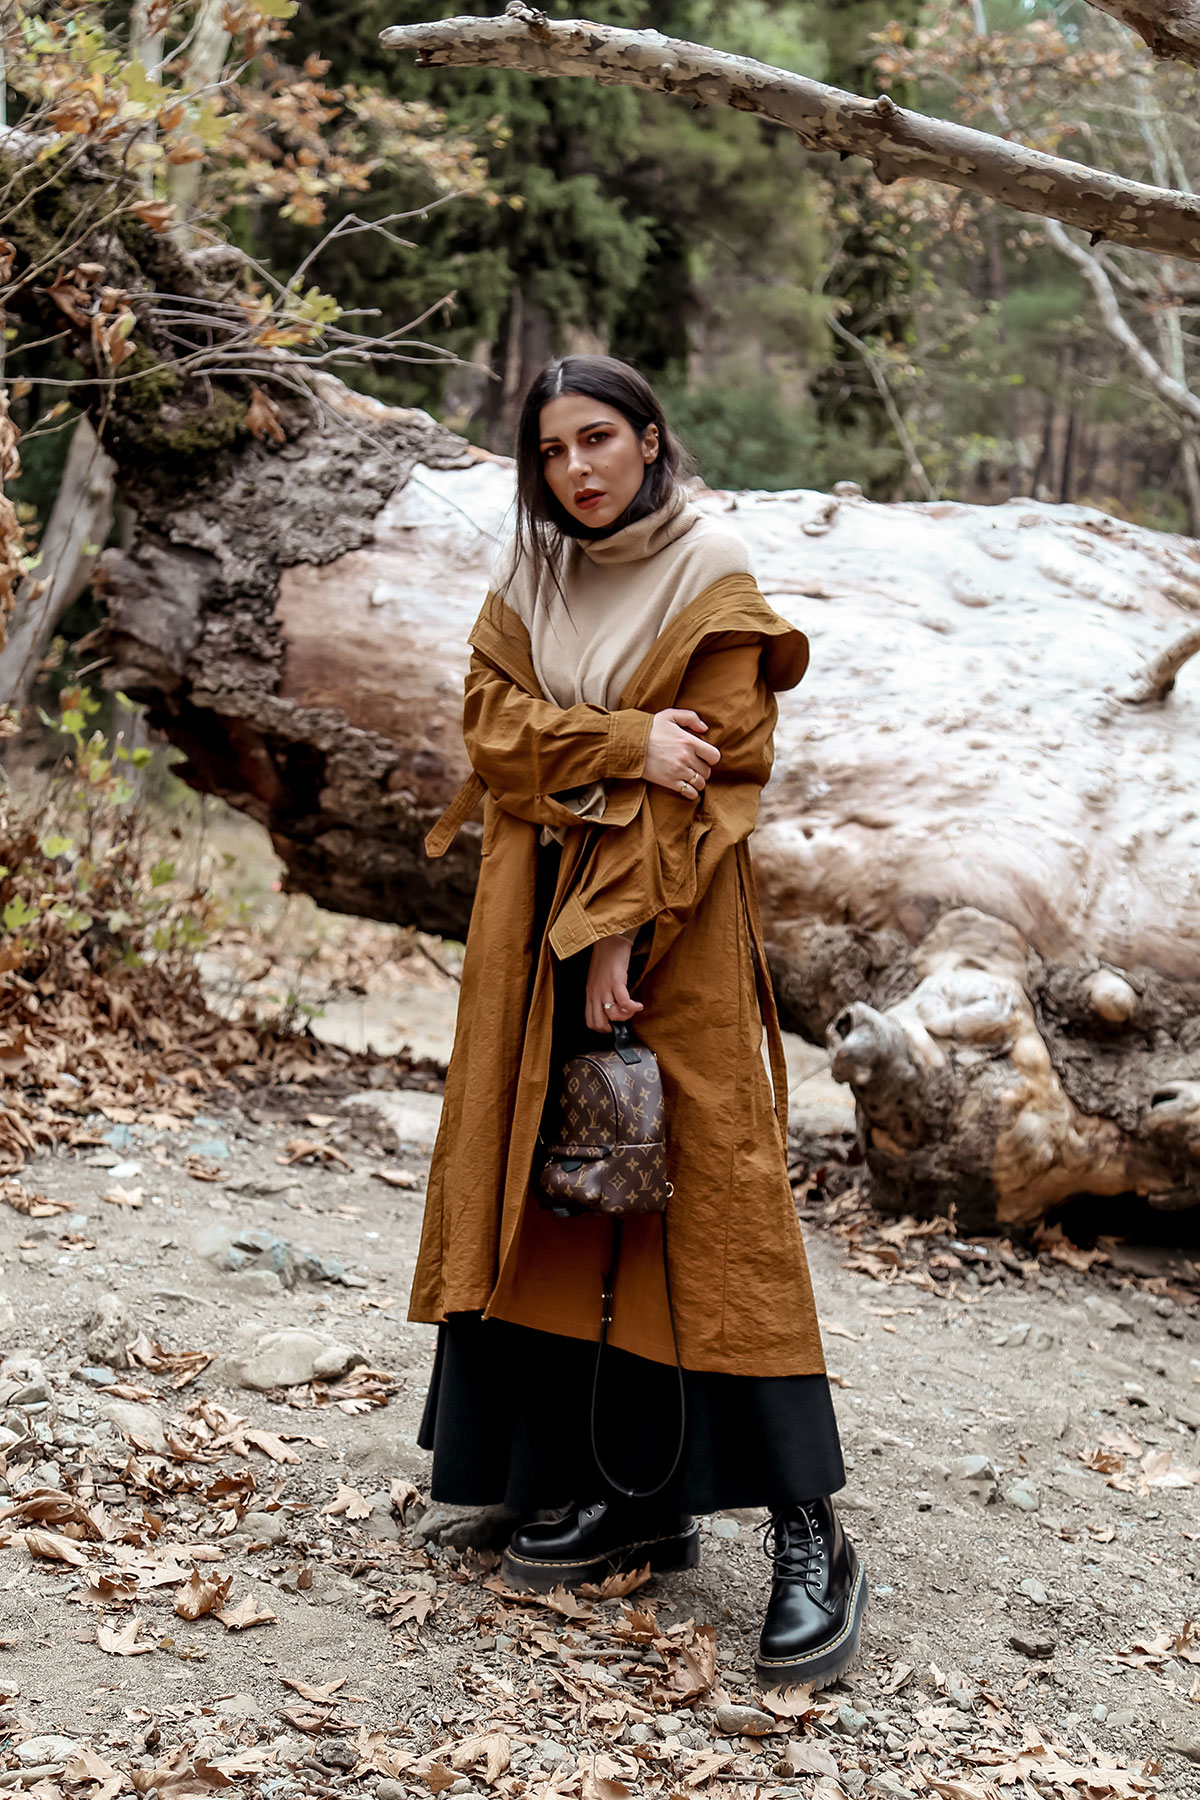 Trench coat and other favourite fall wardrobe staples by Stella Asteria - wearing turtleneck sweater with knit skirt and Dr Martens boots, vintage trench coat